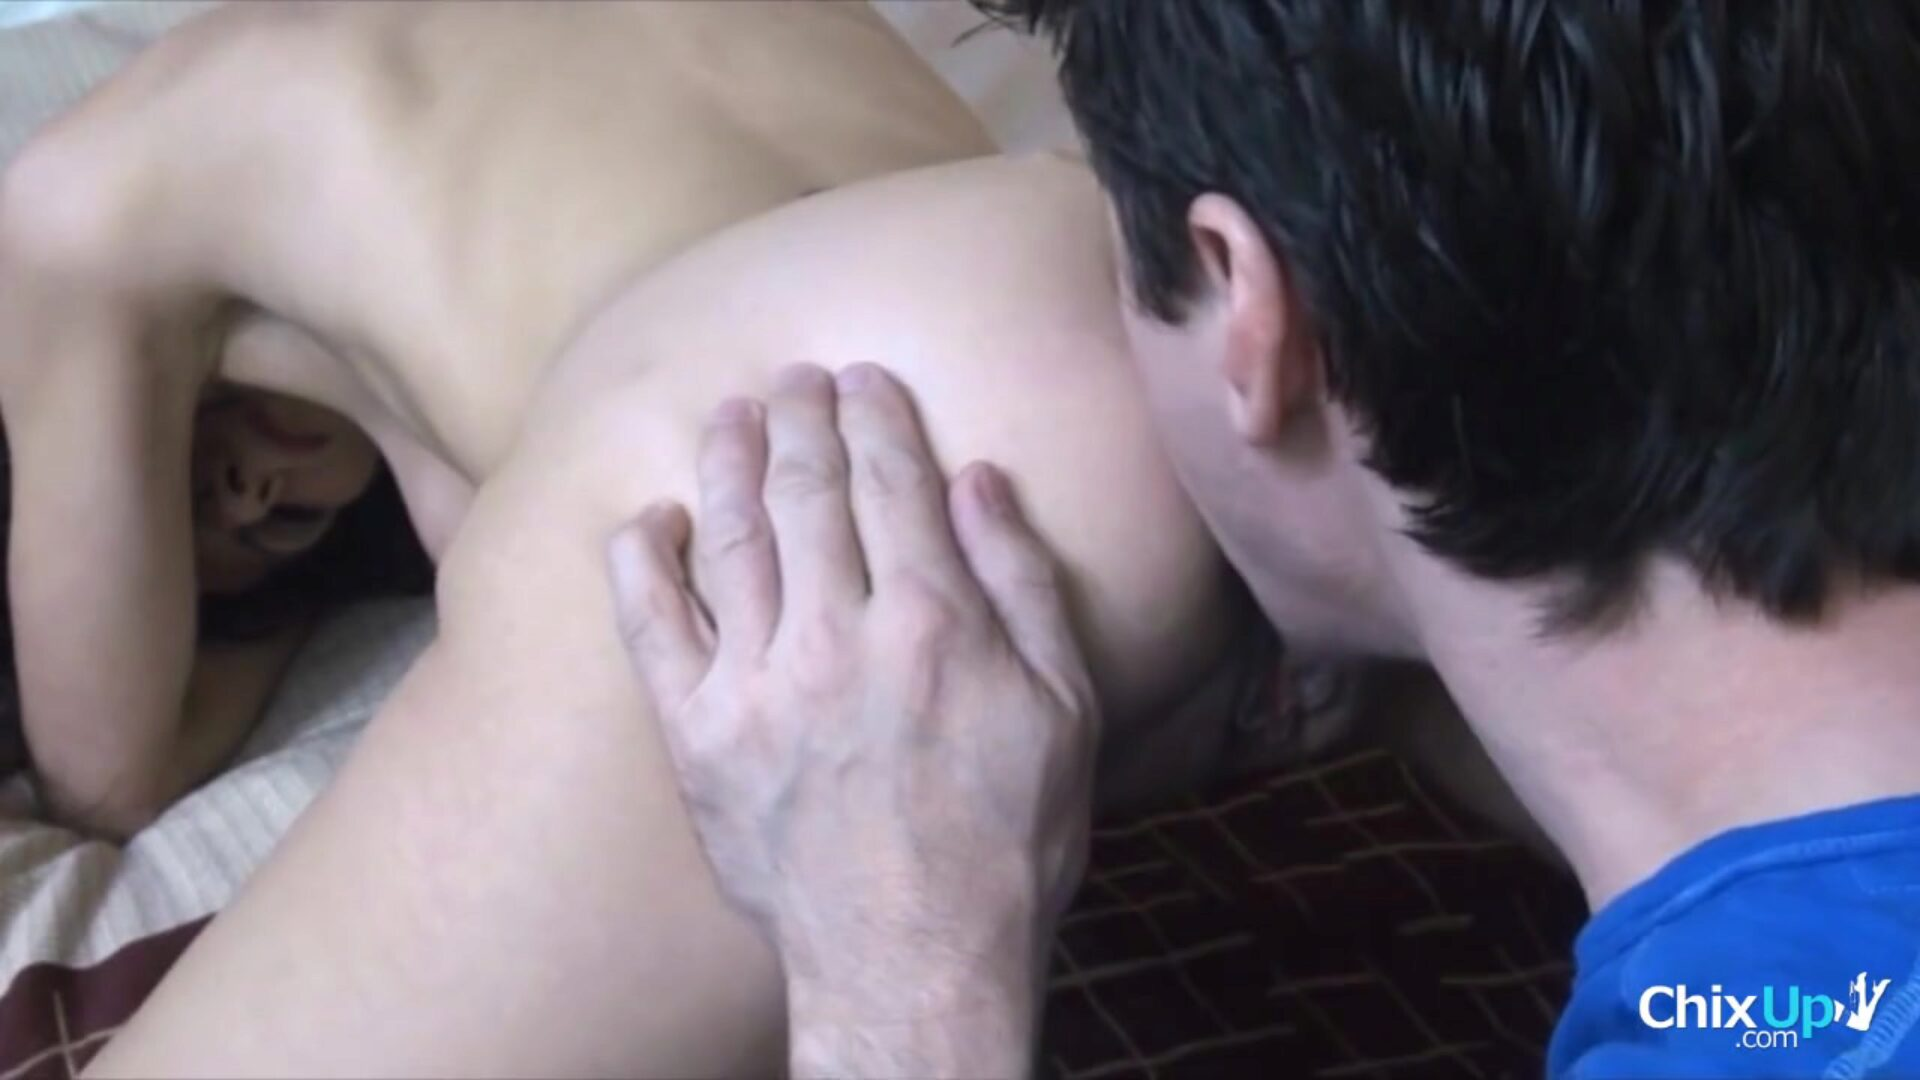 Amateur wifey pumped buttfuck 1st time